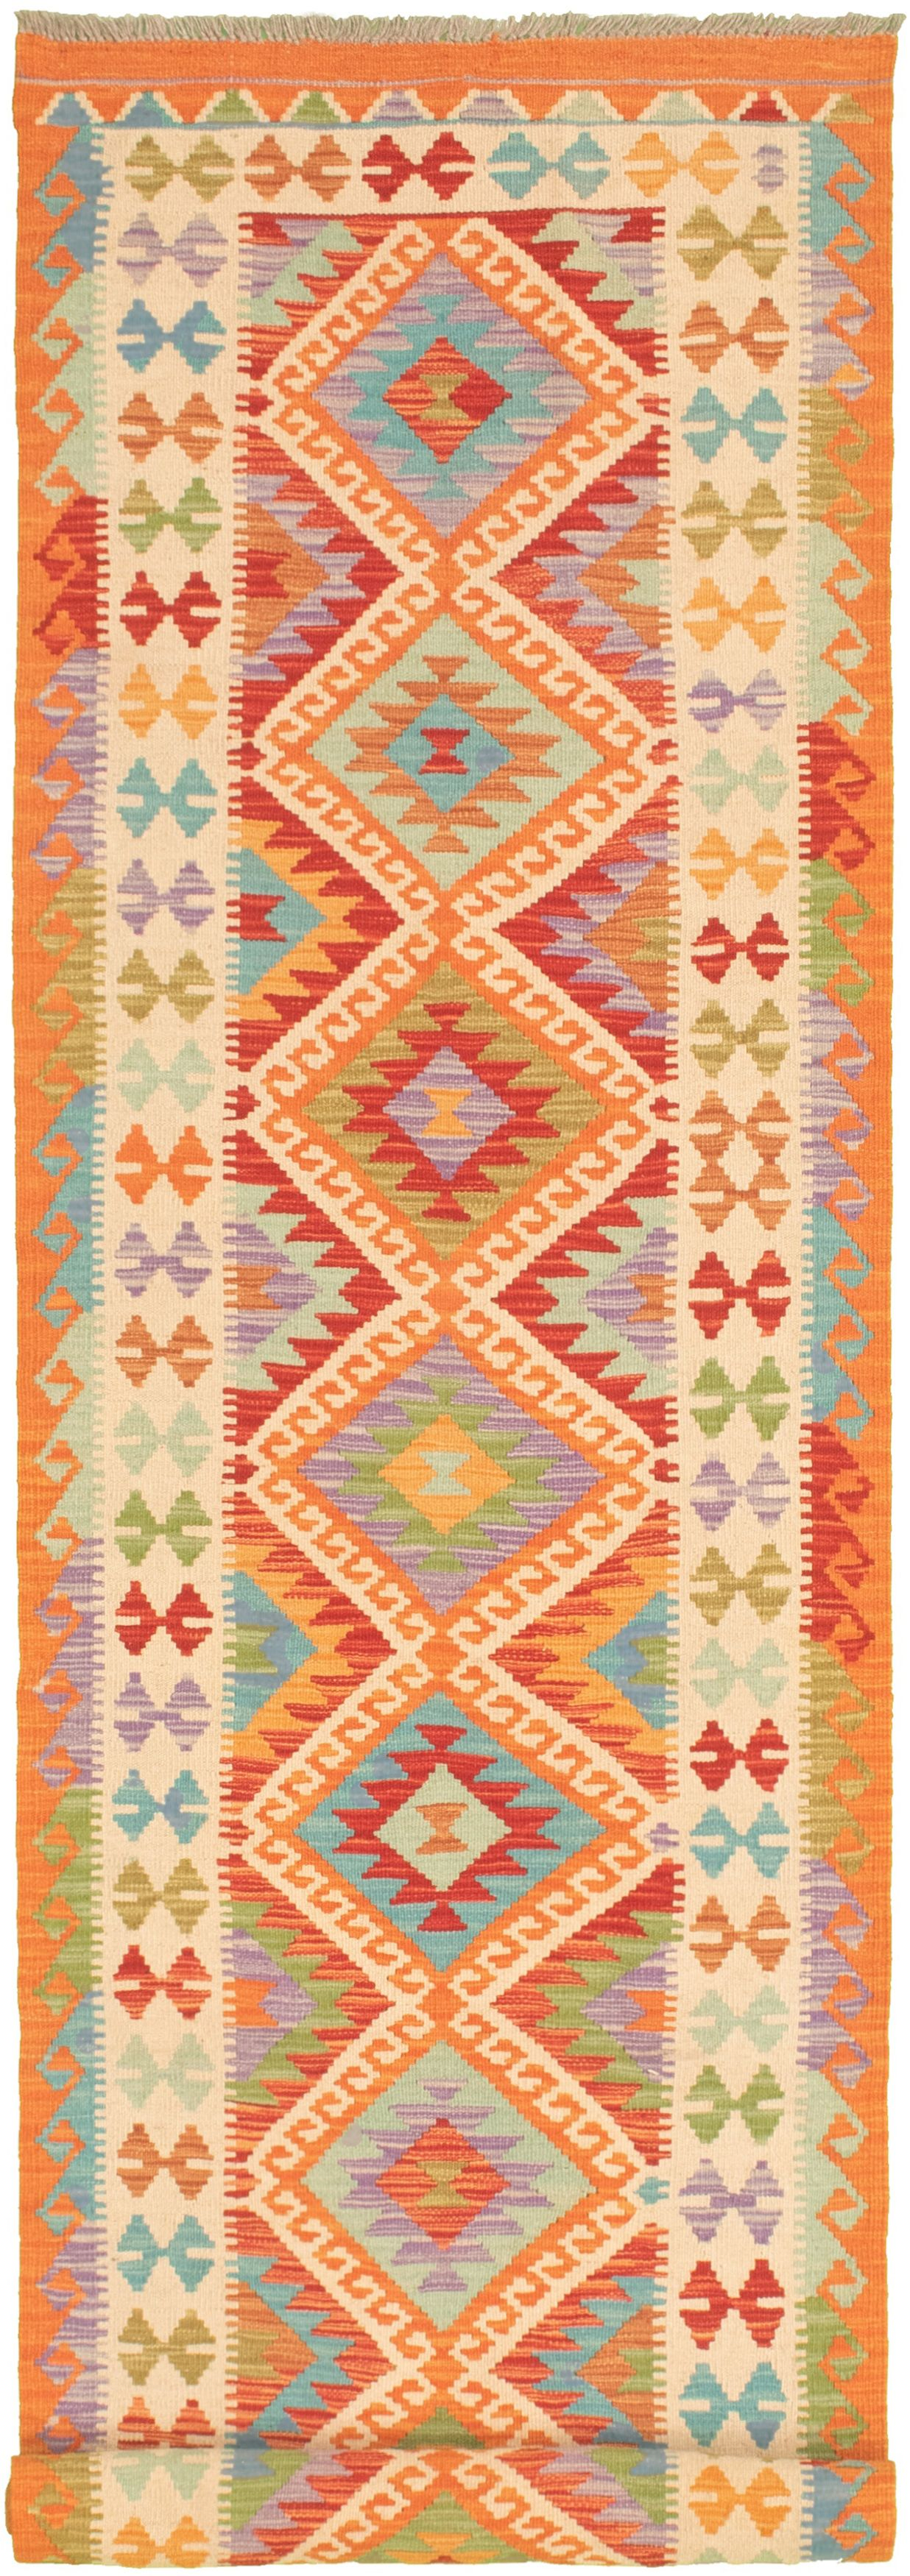 """Hand woven Bold and Colorful  Light Orange Wool Kilim 2'8"""" x 13'2"""" Size: 2'8"""" x 13'2"""""""